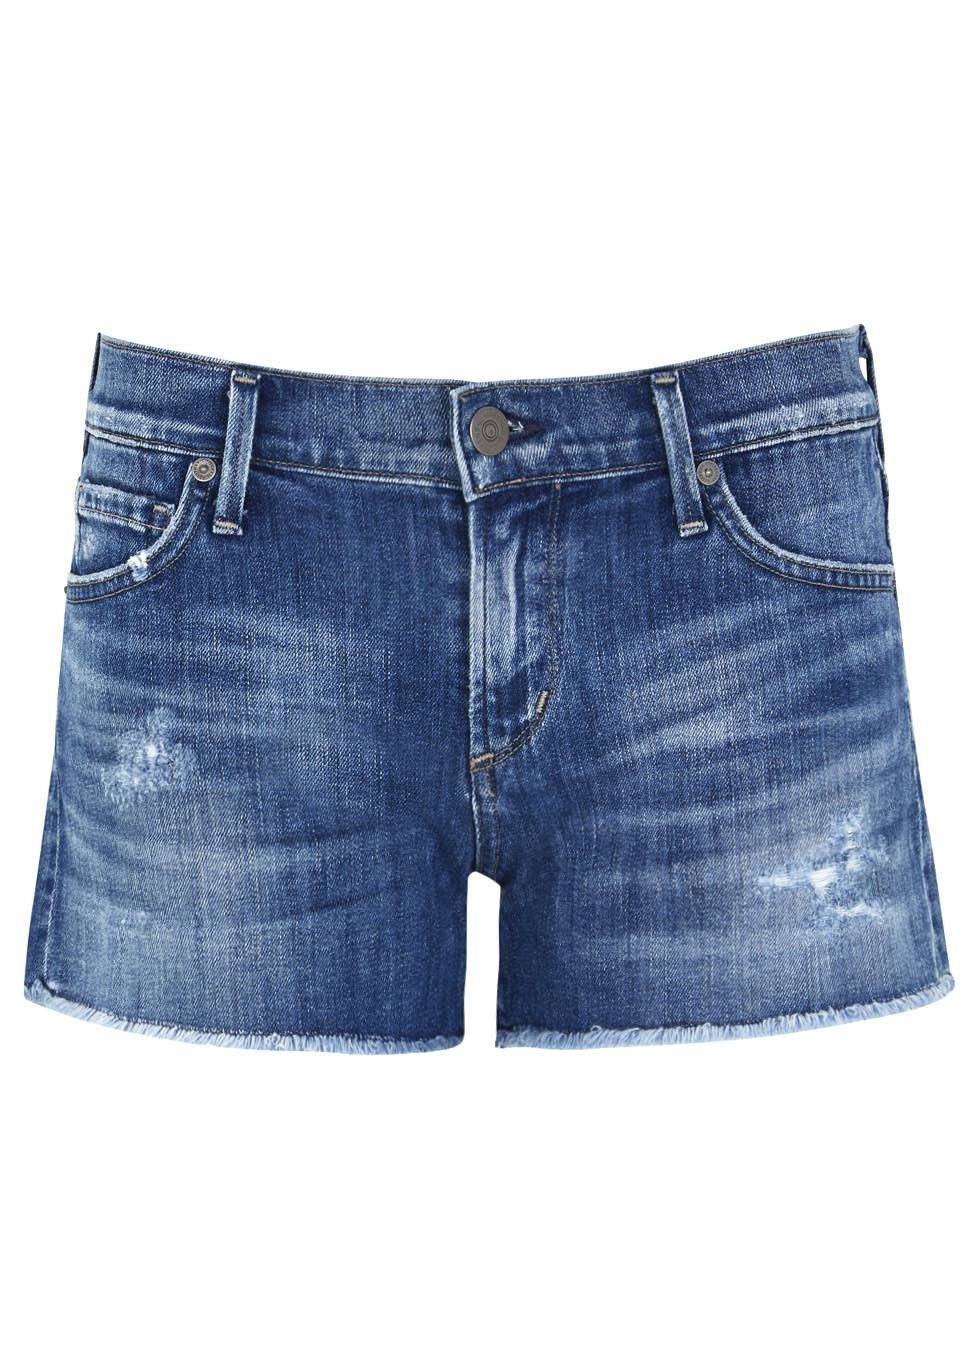 Blue Distressed Denim Shorts - pattern: plain; waist: low rise; pocket detail: traditional 5 pocket; predominant colour: royal blue; occasions: casual, holiday; fibres: cotton - mix; texture group: denim; pattern type: fabric; season: s/s 2014; style: denim; length: short shorts; fit: slim leg